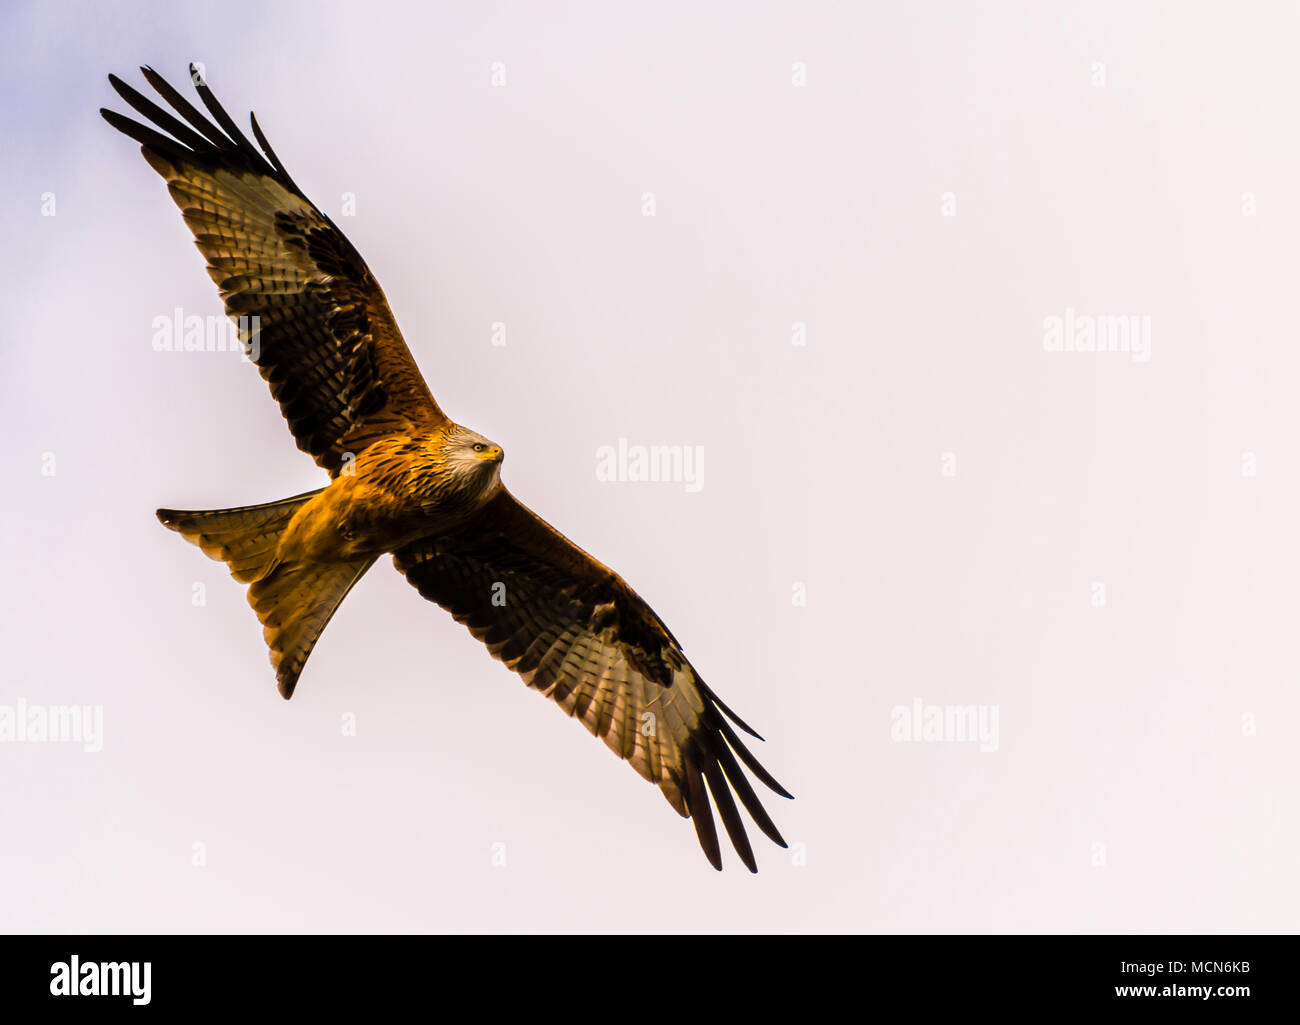 Fabulous Red Kite flying over Cliveden, Buckinghamshire, UK - Stock Image